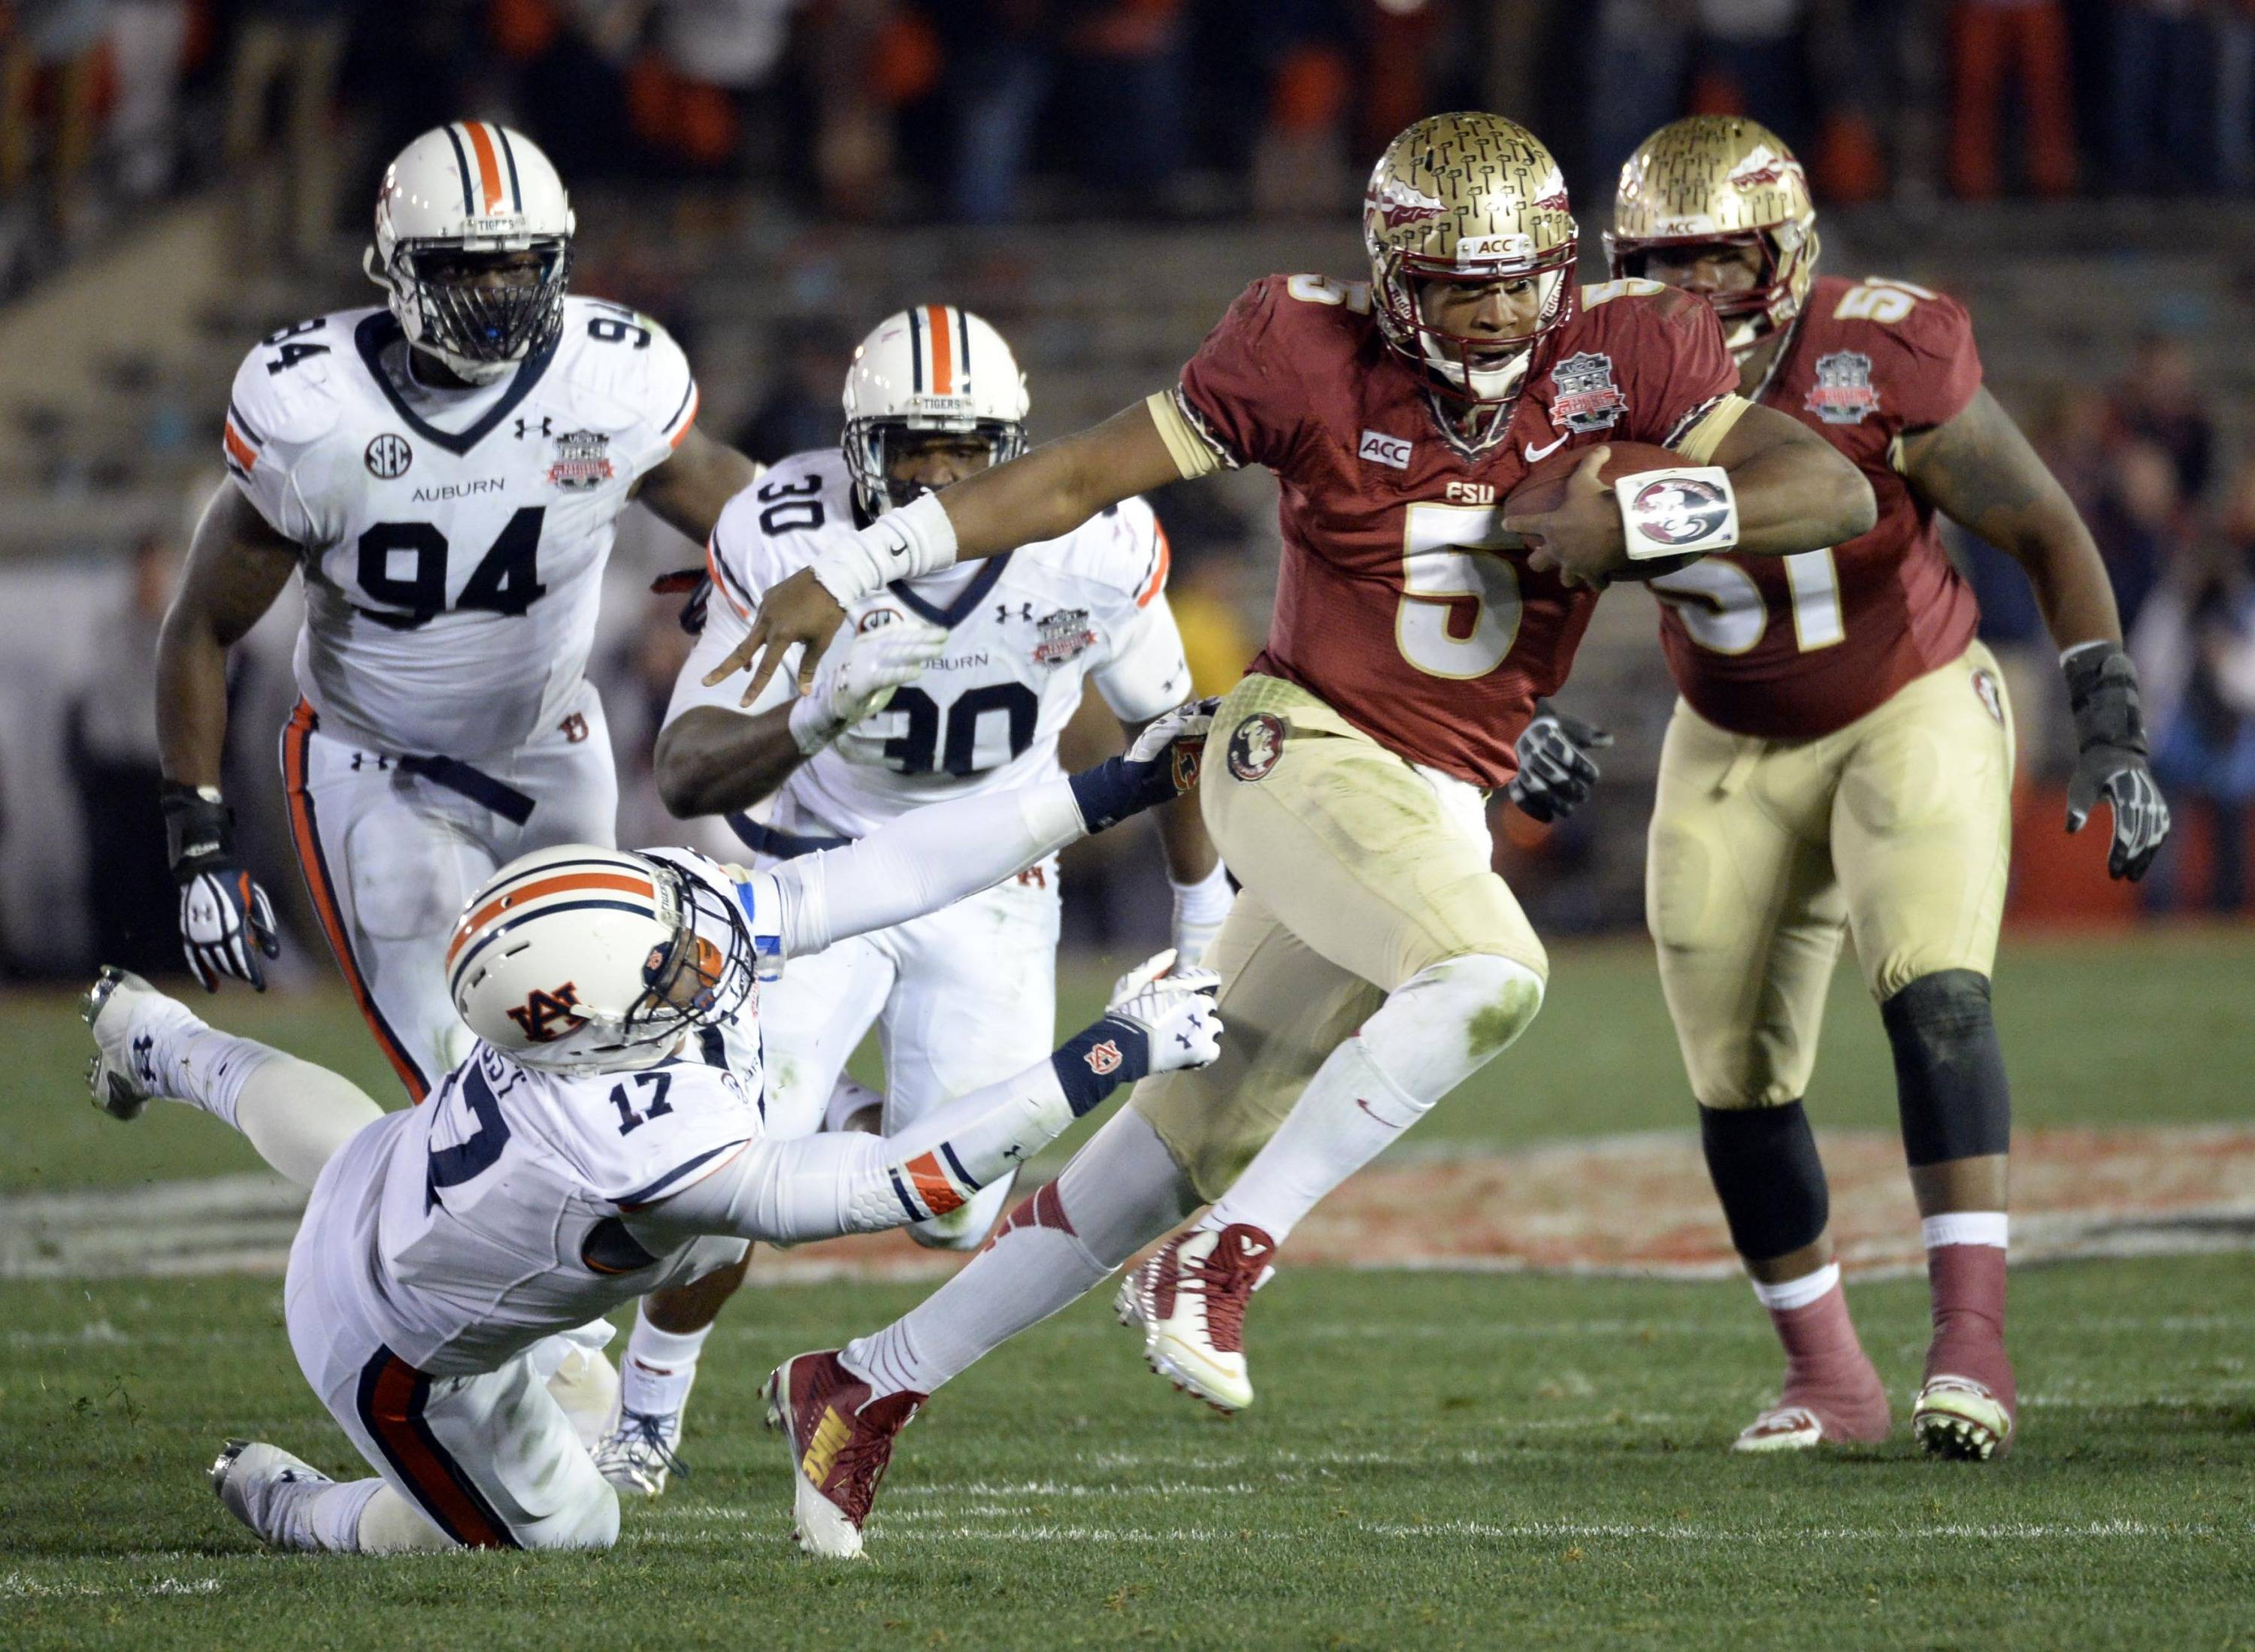 Jan 6, 2014; Pasadena, CA, USA; Florida State Seminoles quarterback Jameis Winston (5) escapes the tackle from Auburn Tigers linebacker Kris Frost (17)during the first half of the 2014 BCS National Championship game at the Rose Bowl.  Mandatory Credit: Richard Mackson-USA TODAY Sports